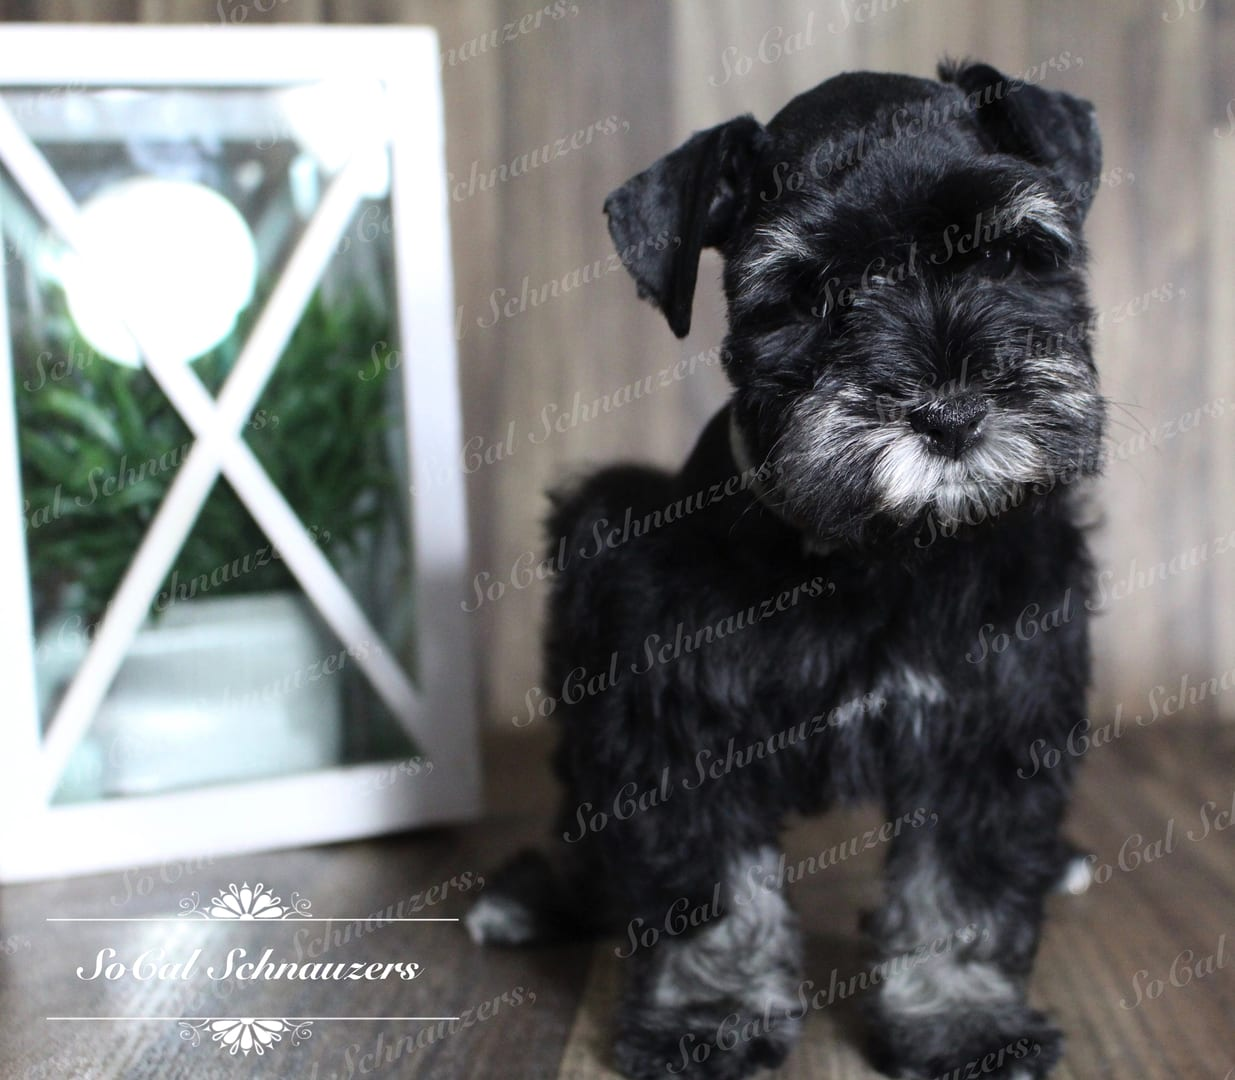 Miniature Schnauzer with mirror in the background